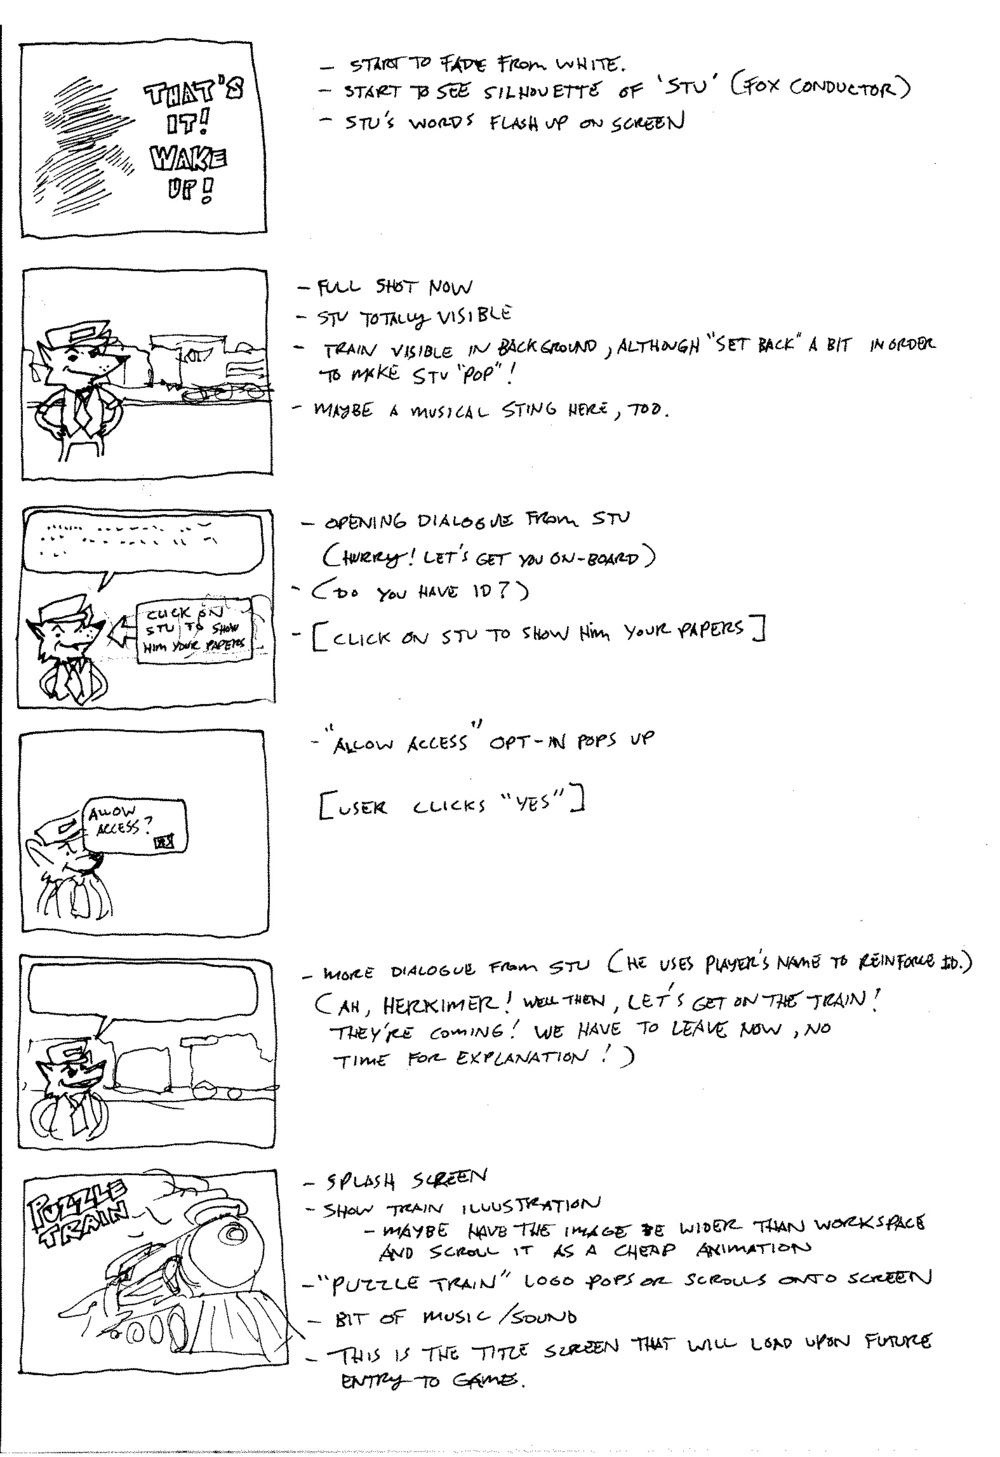 Storyboards for the opening cutscene.